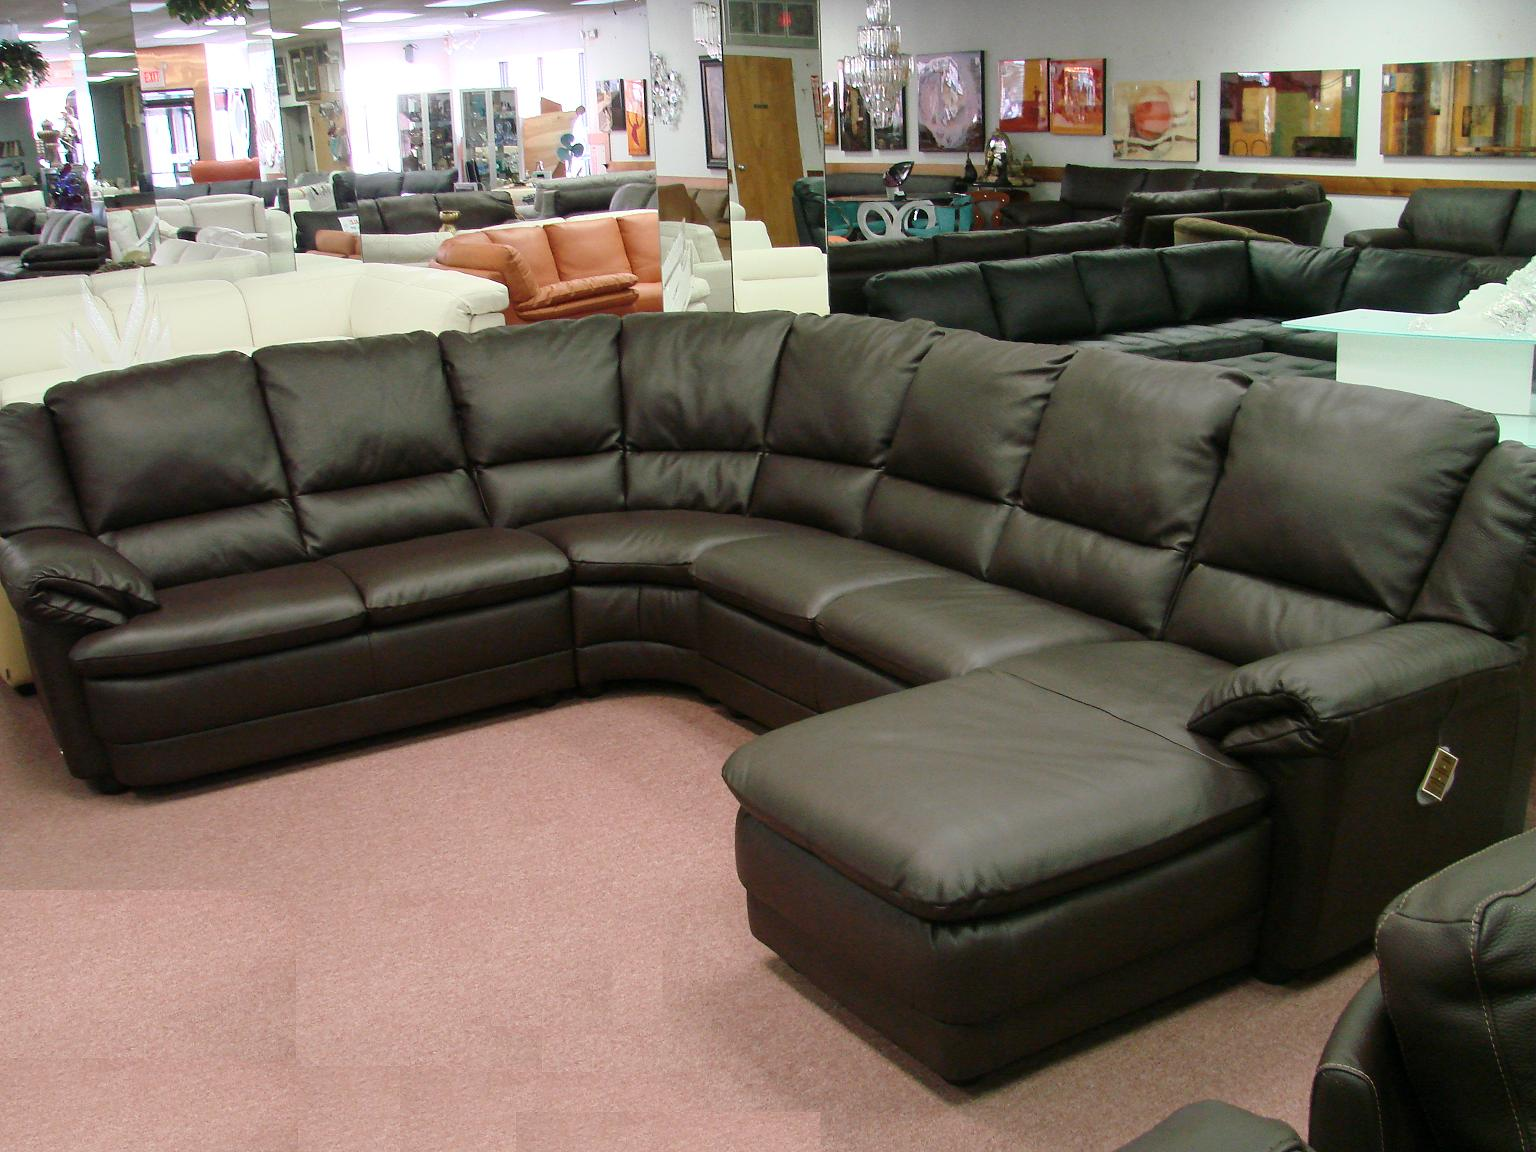 Sectional Sofa On Sale Country Style Tables Natuzzi Leather Sofas And Sectionals By Interior Concepts